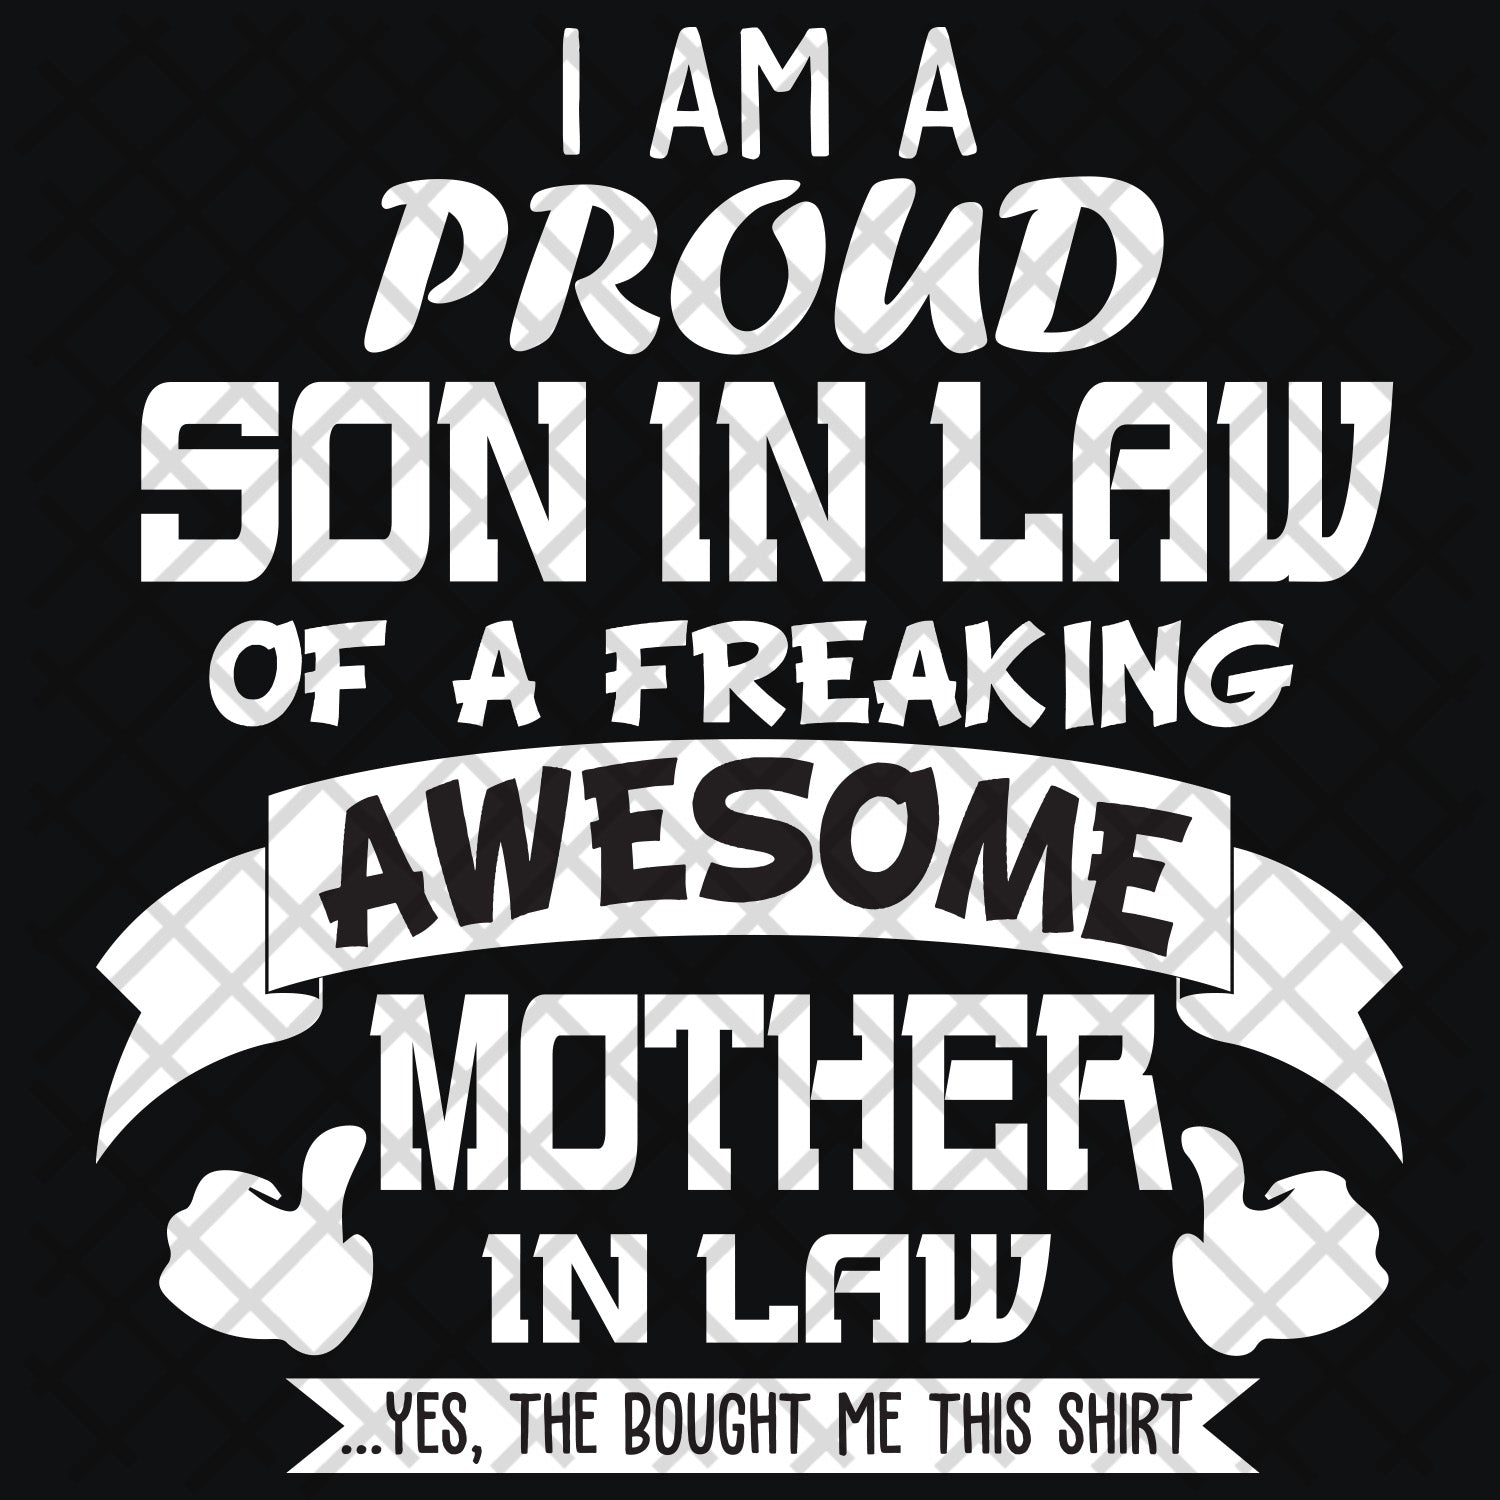 I am a proud son in law of a freaking awesome mother in law, mother in law svg, mother svg, son in law svg, son svg,family svg, family shirt,family gift,trending svg, Files For Silhouette, Files For Cricut, SVG, DXF, EPS, PNG, Instant Download